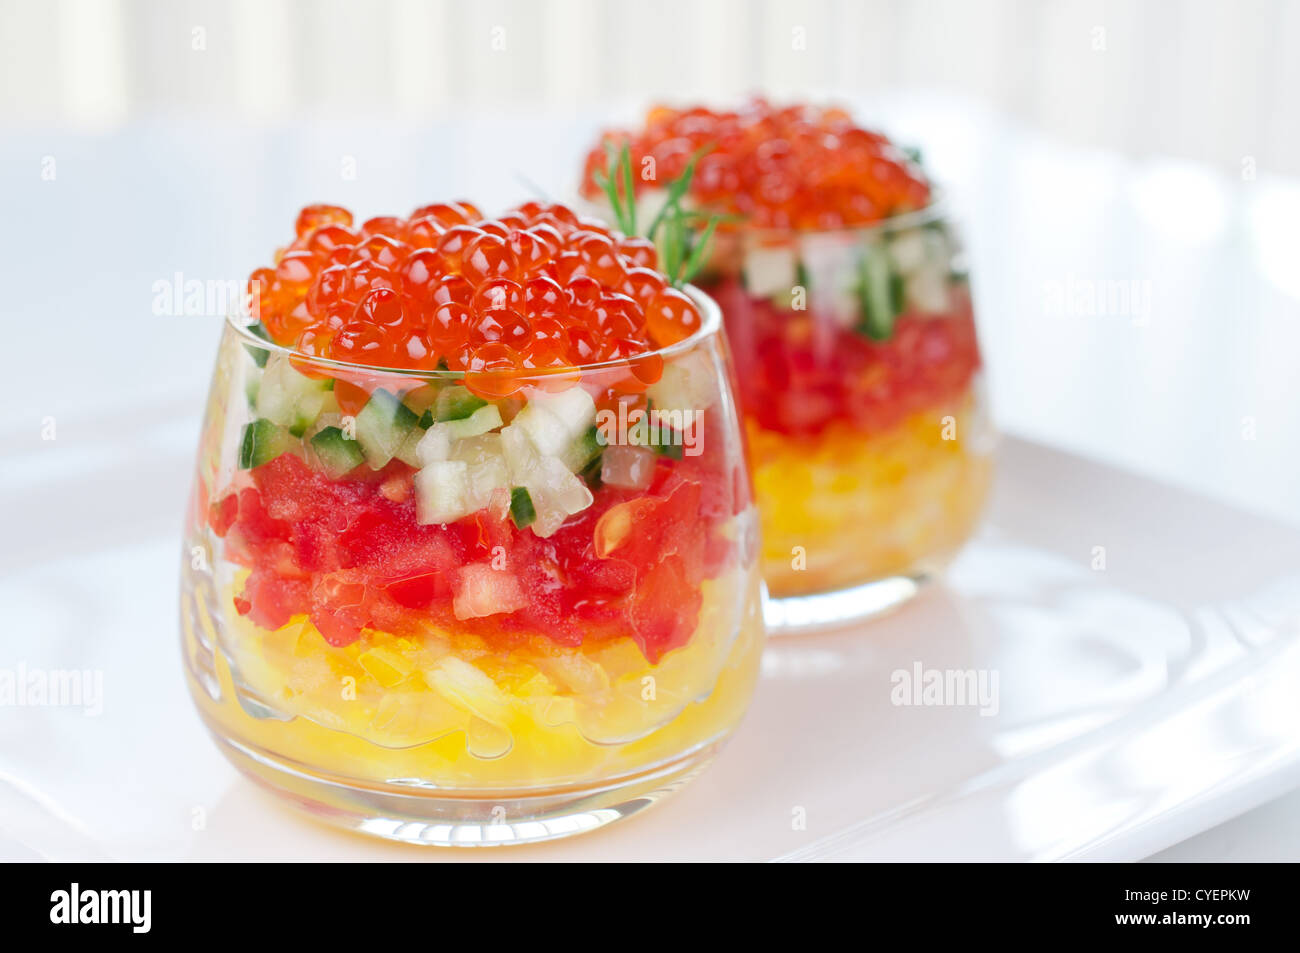 Caviar with vegetable salad in glasses - Stock Image